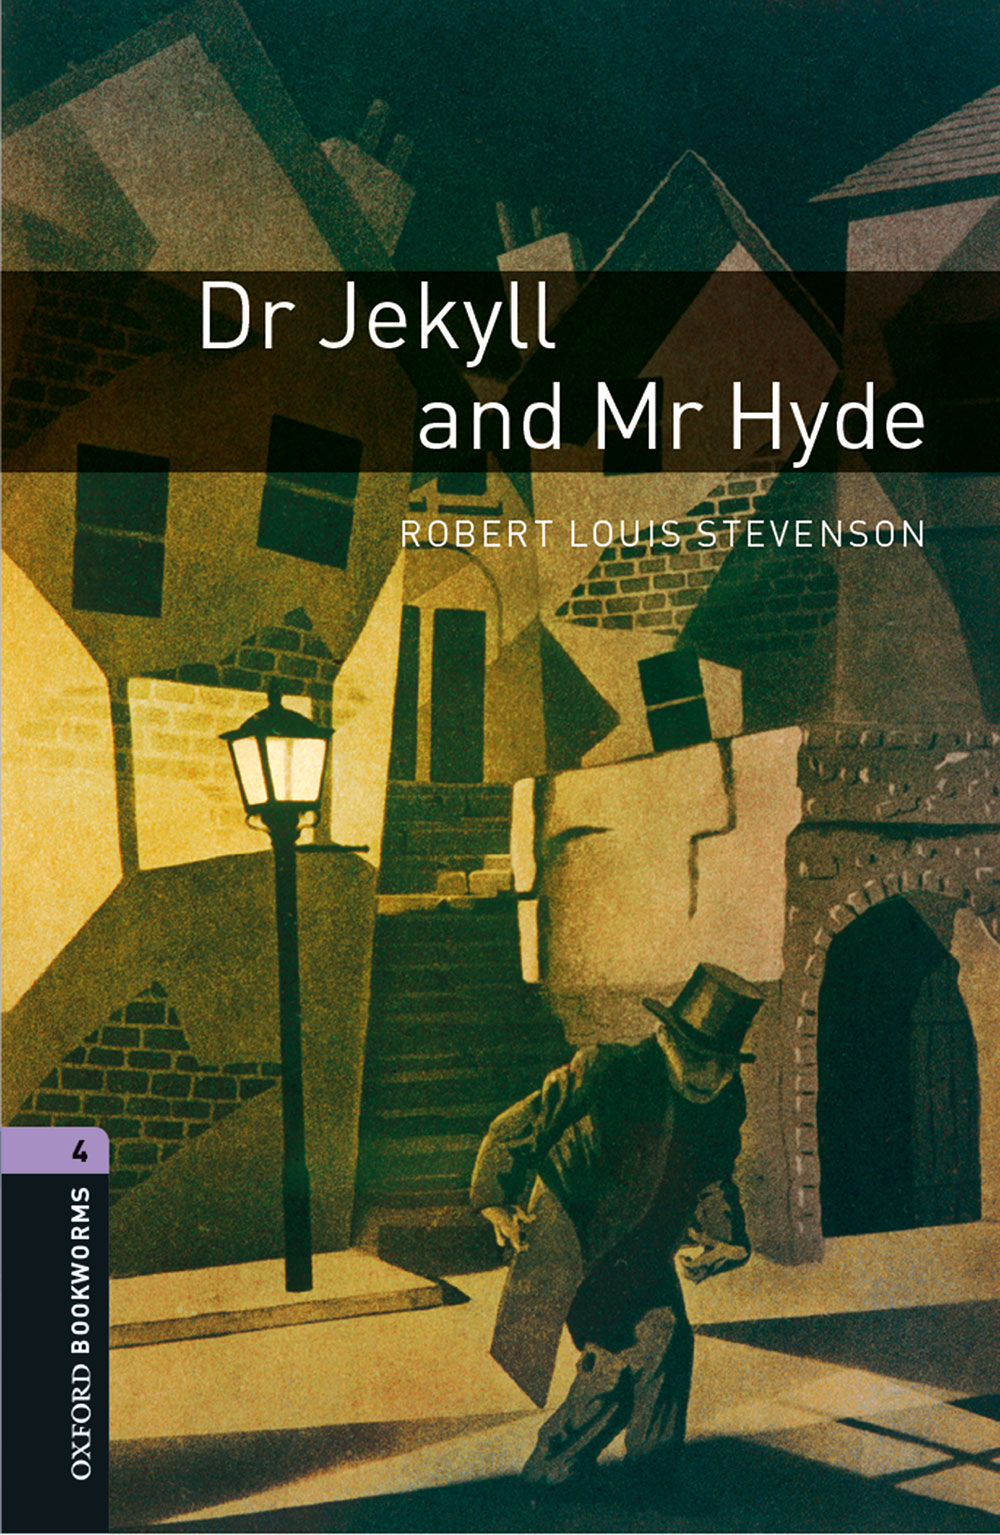 Dr Jekyll and Mr Hyde | Oxford Graded Readers